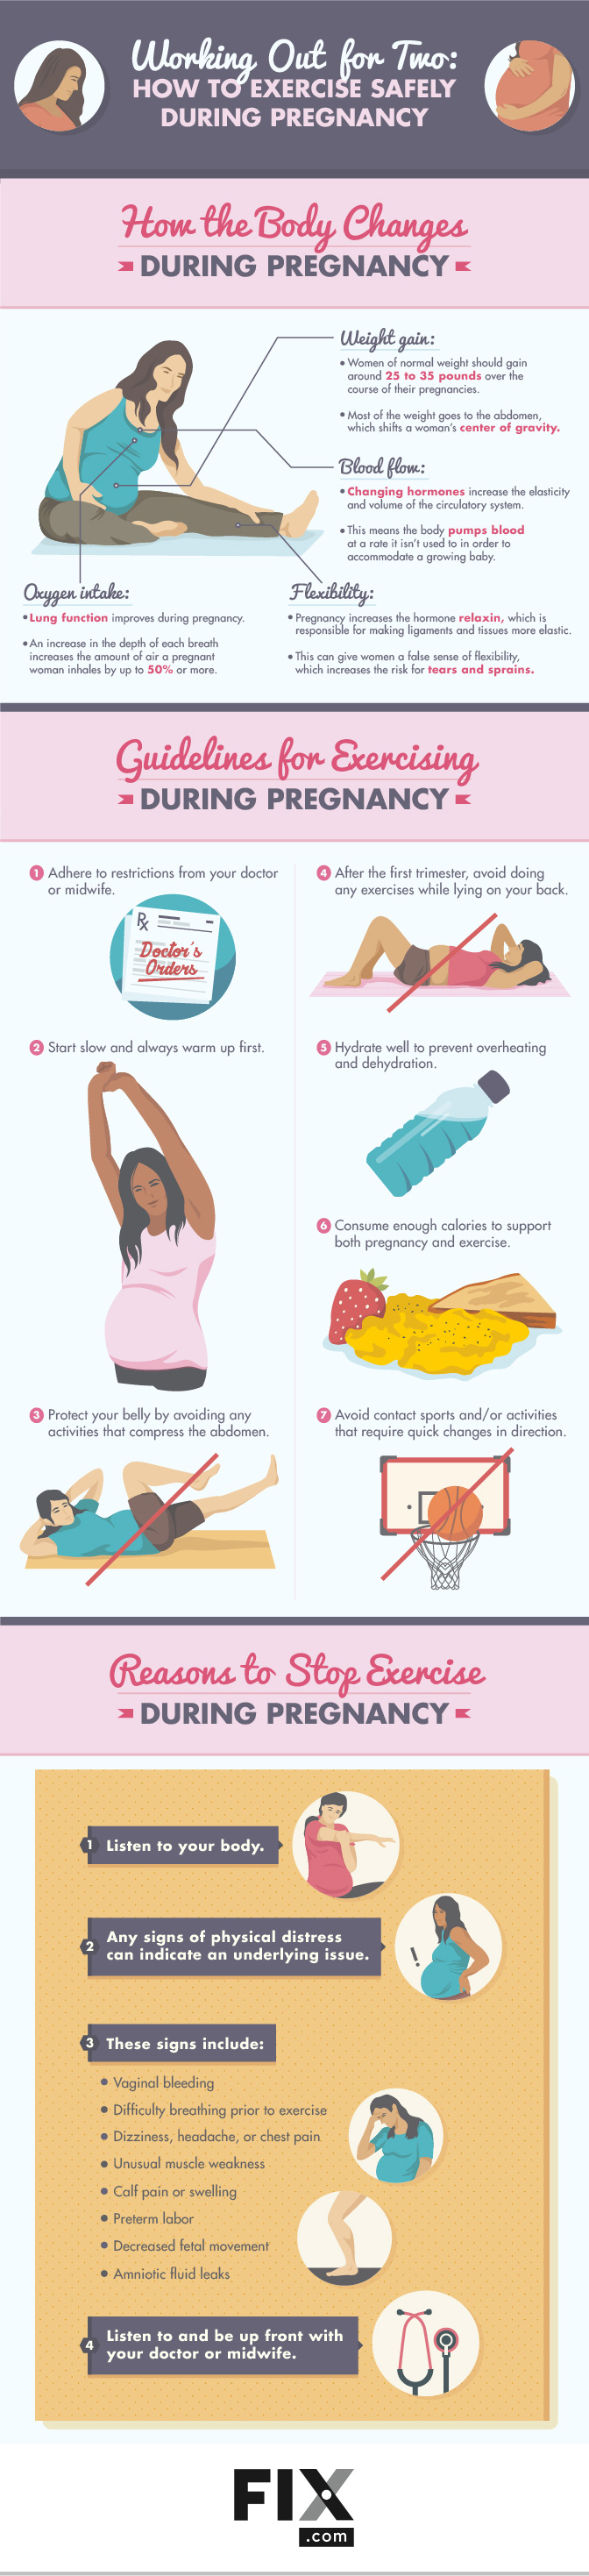 Working Out For Two How To Exercise Safely During Pregnancy